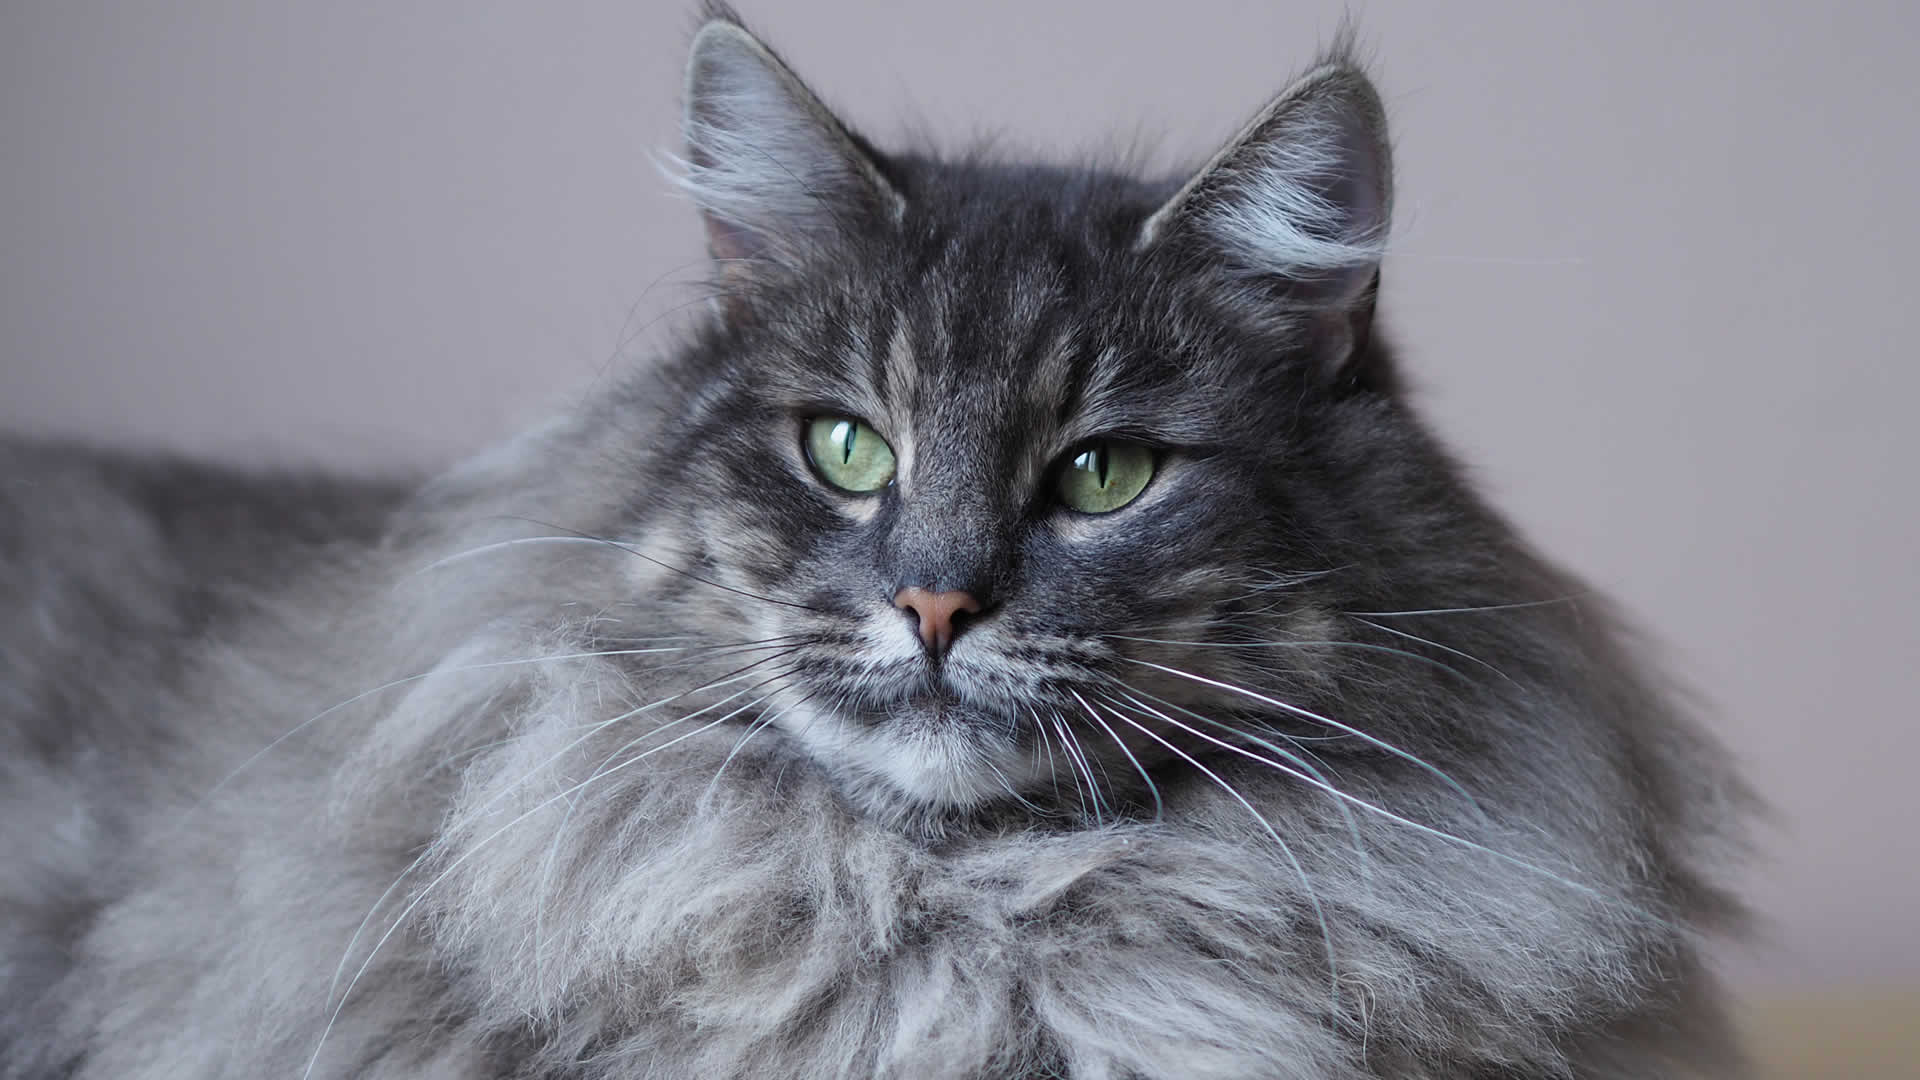 Another cat breed with a long whiskers is the Norwegian Forest Cat